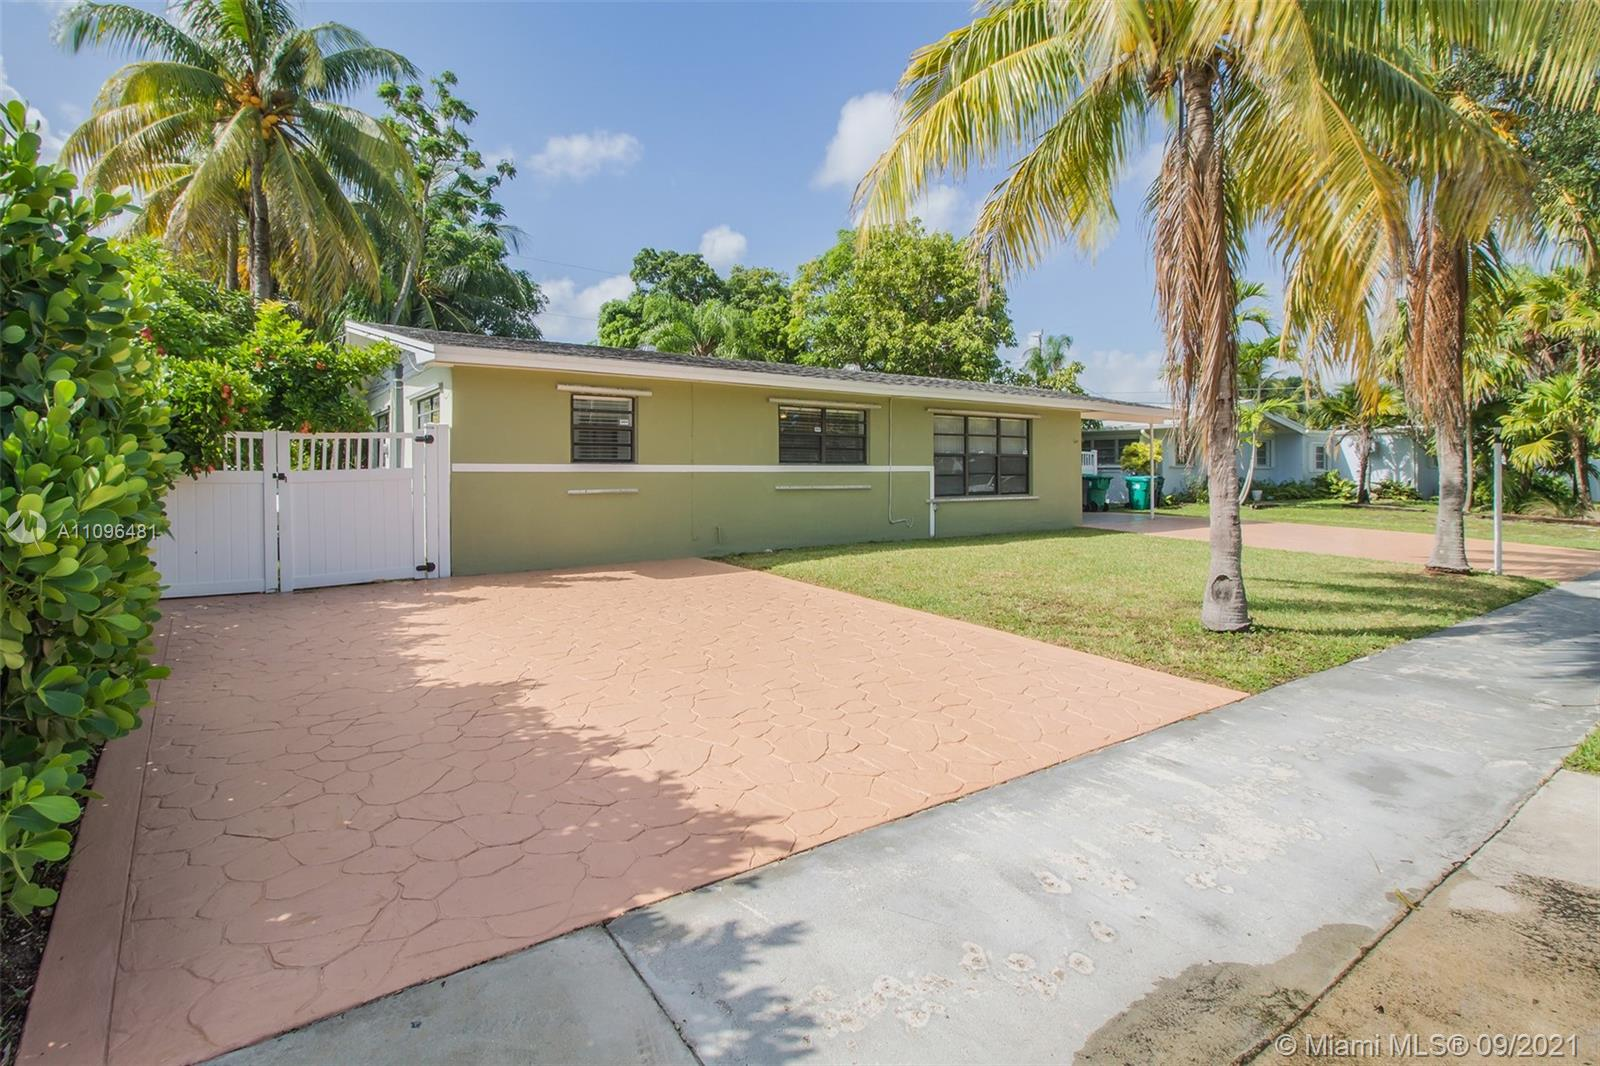 Just listed! Charming 4 bedroom 2 bathroom single family home for sale in Cutler Bay. Home features a split floor plan with an upgraded kitchen & bathrooms. Great outdoor entertaining space with a large screened in pool surrounded by exotic fruit trees. Home is fully fenced with 2 large paved driveways with plenty of space for parking. Easy to Show!